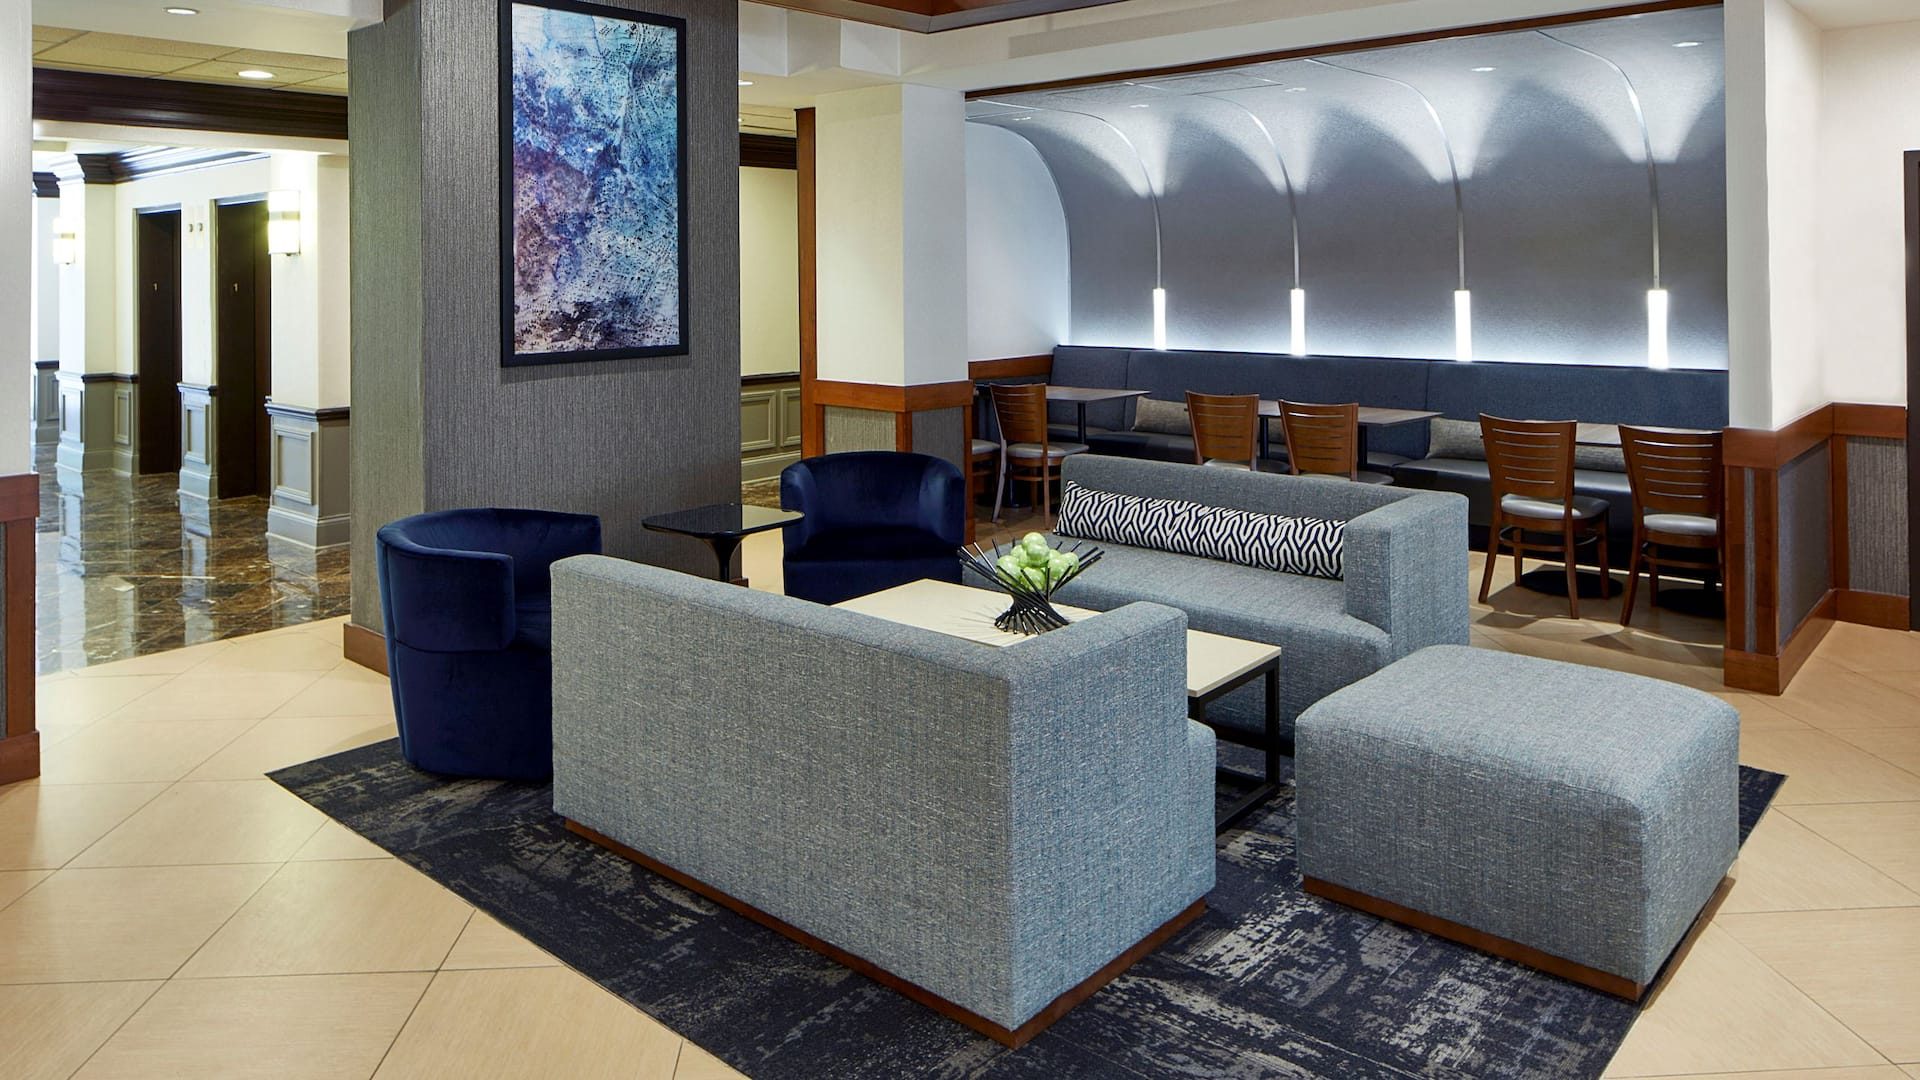 Hyatt Place Atlanta Cobb Galleria Lobby Seating